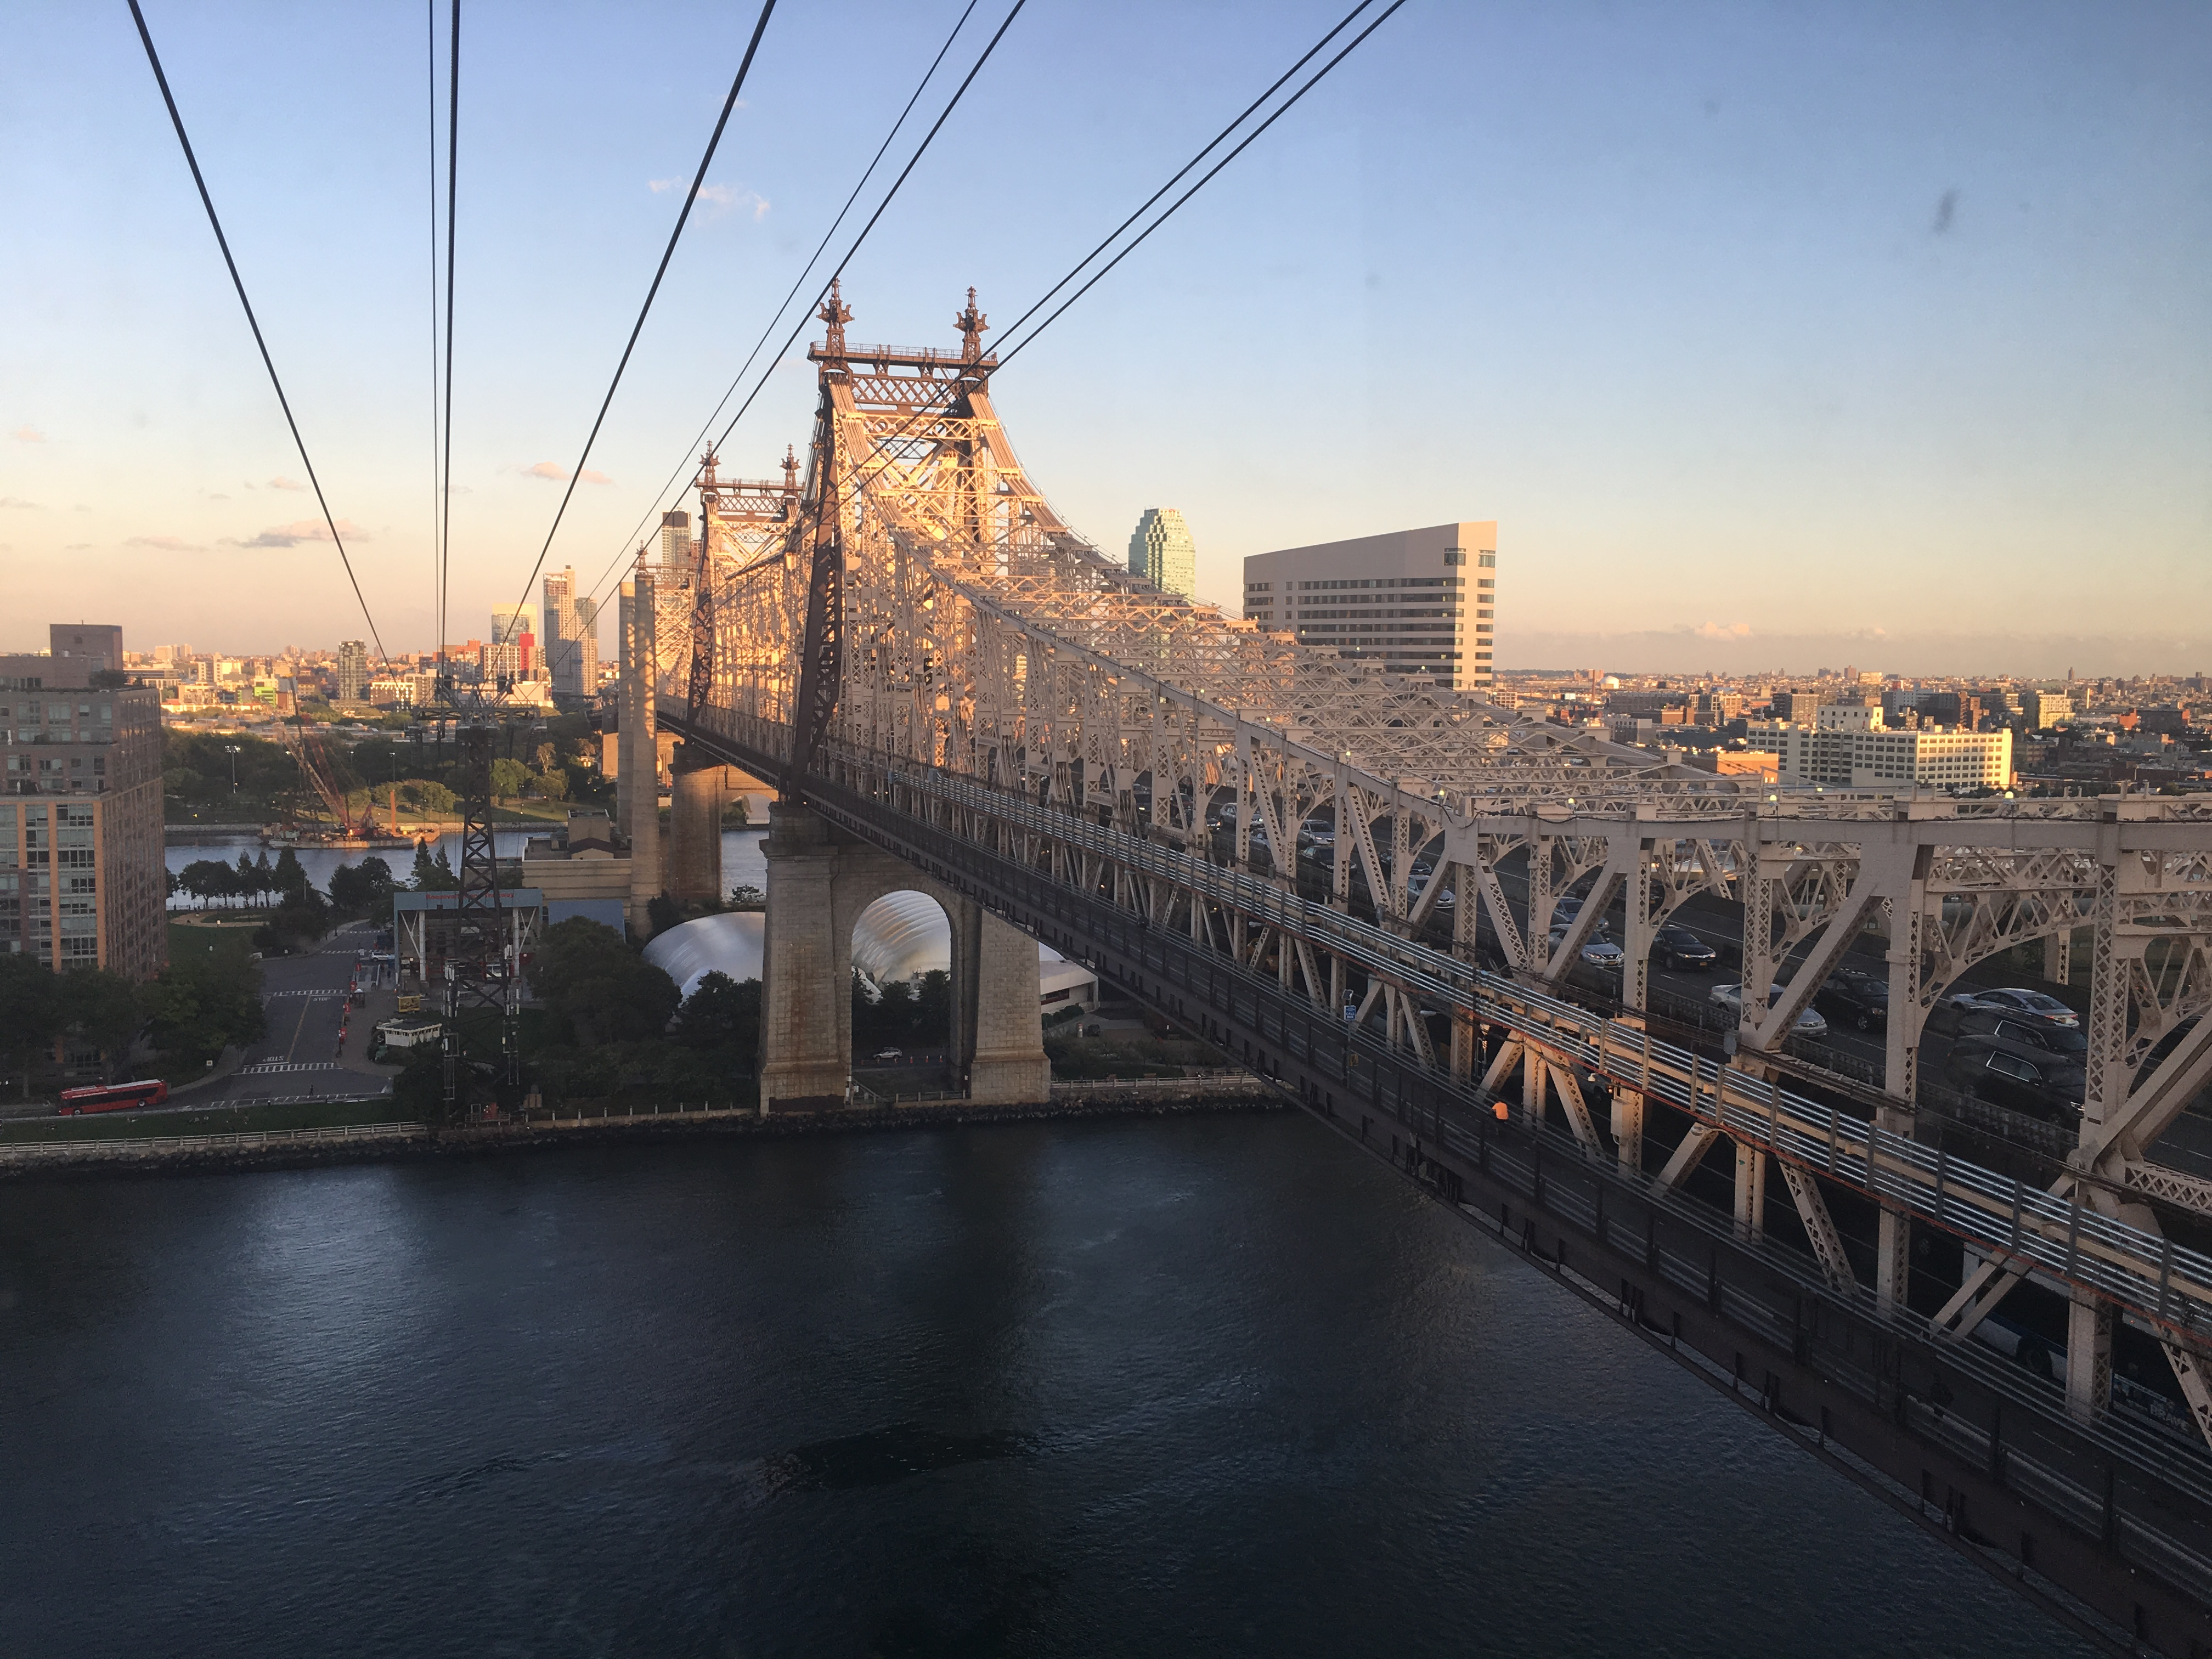 The impressive Queensborough Bridge stretching over the River.